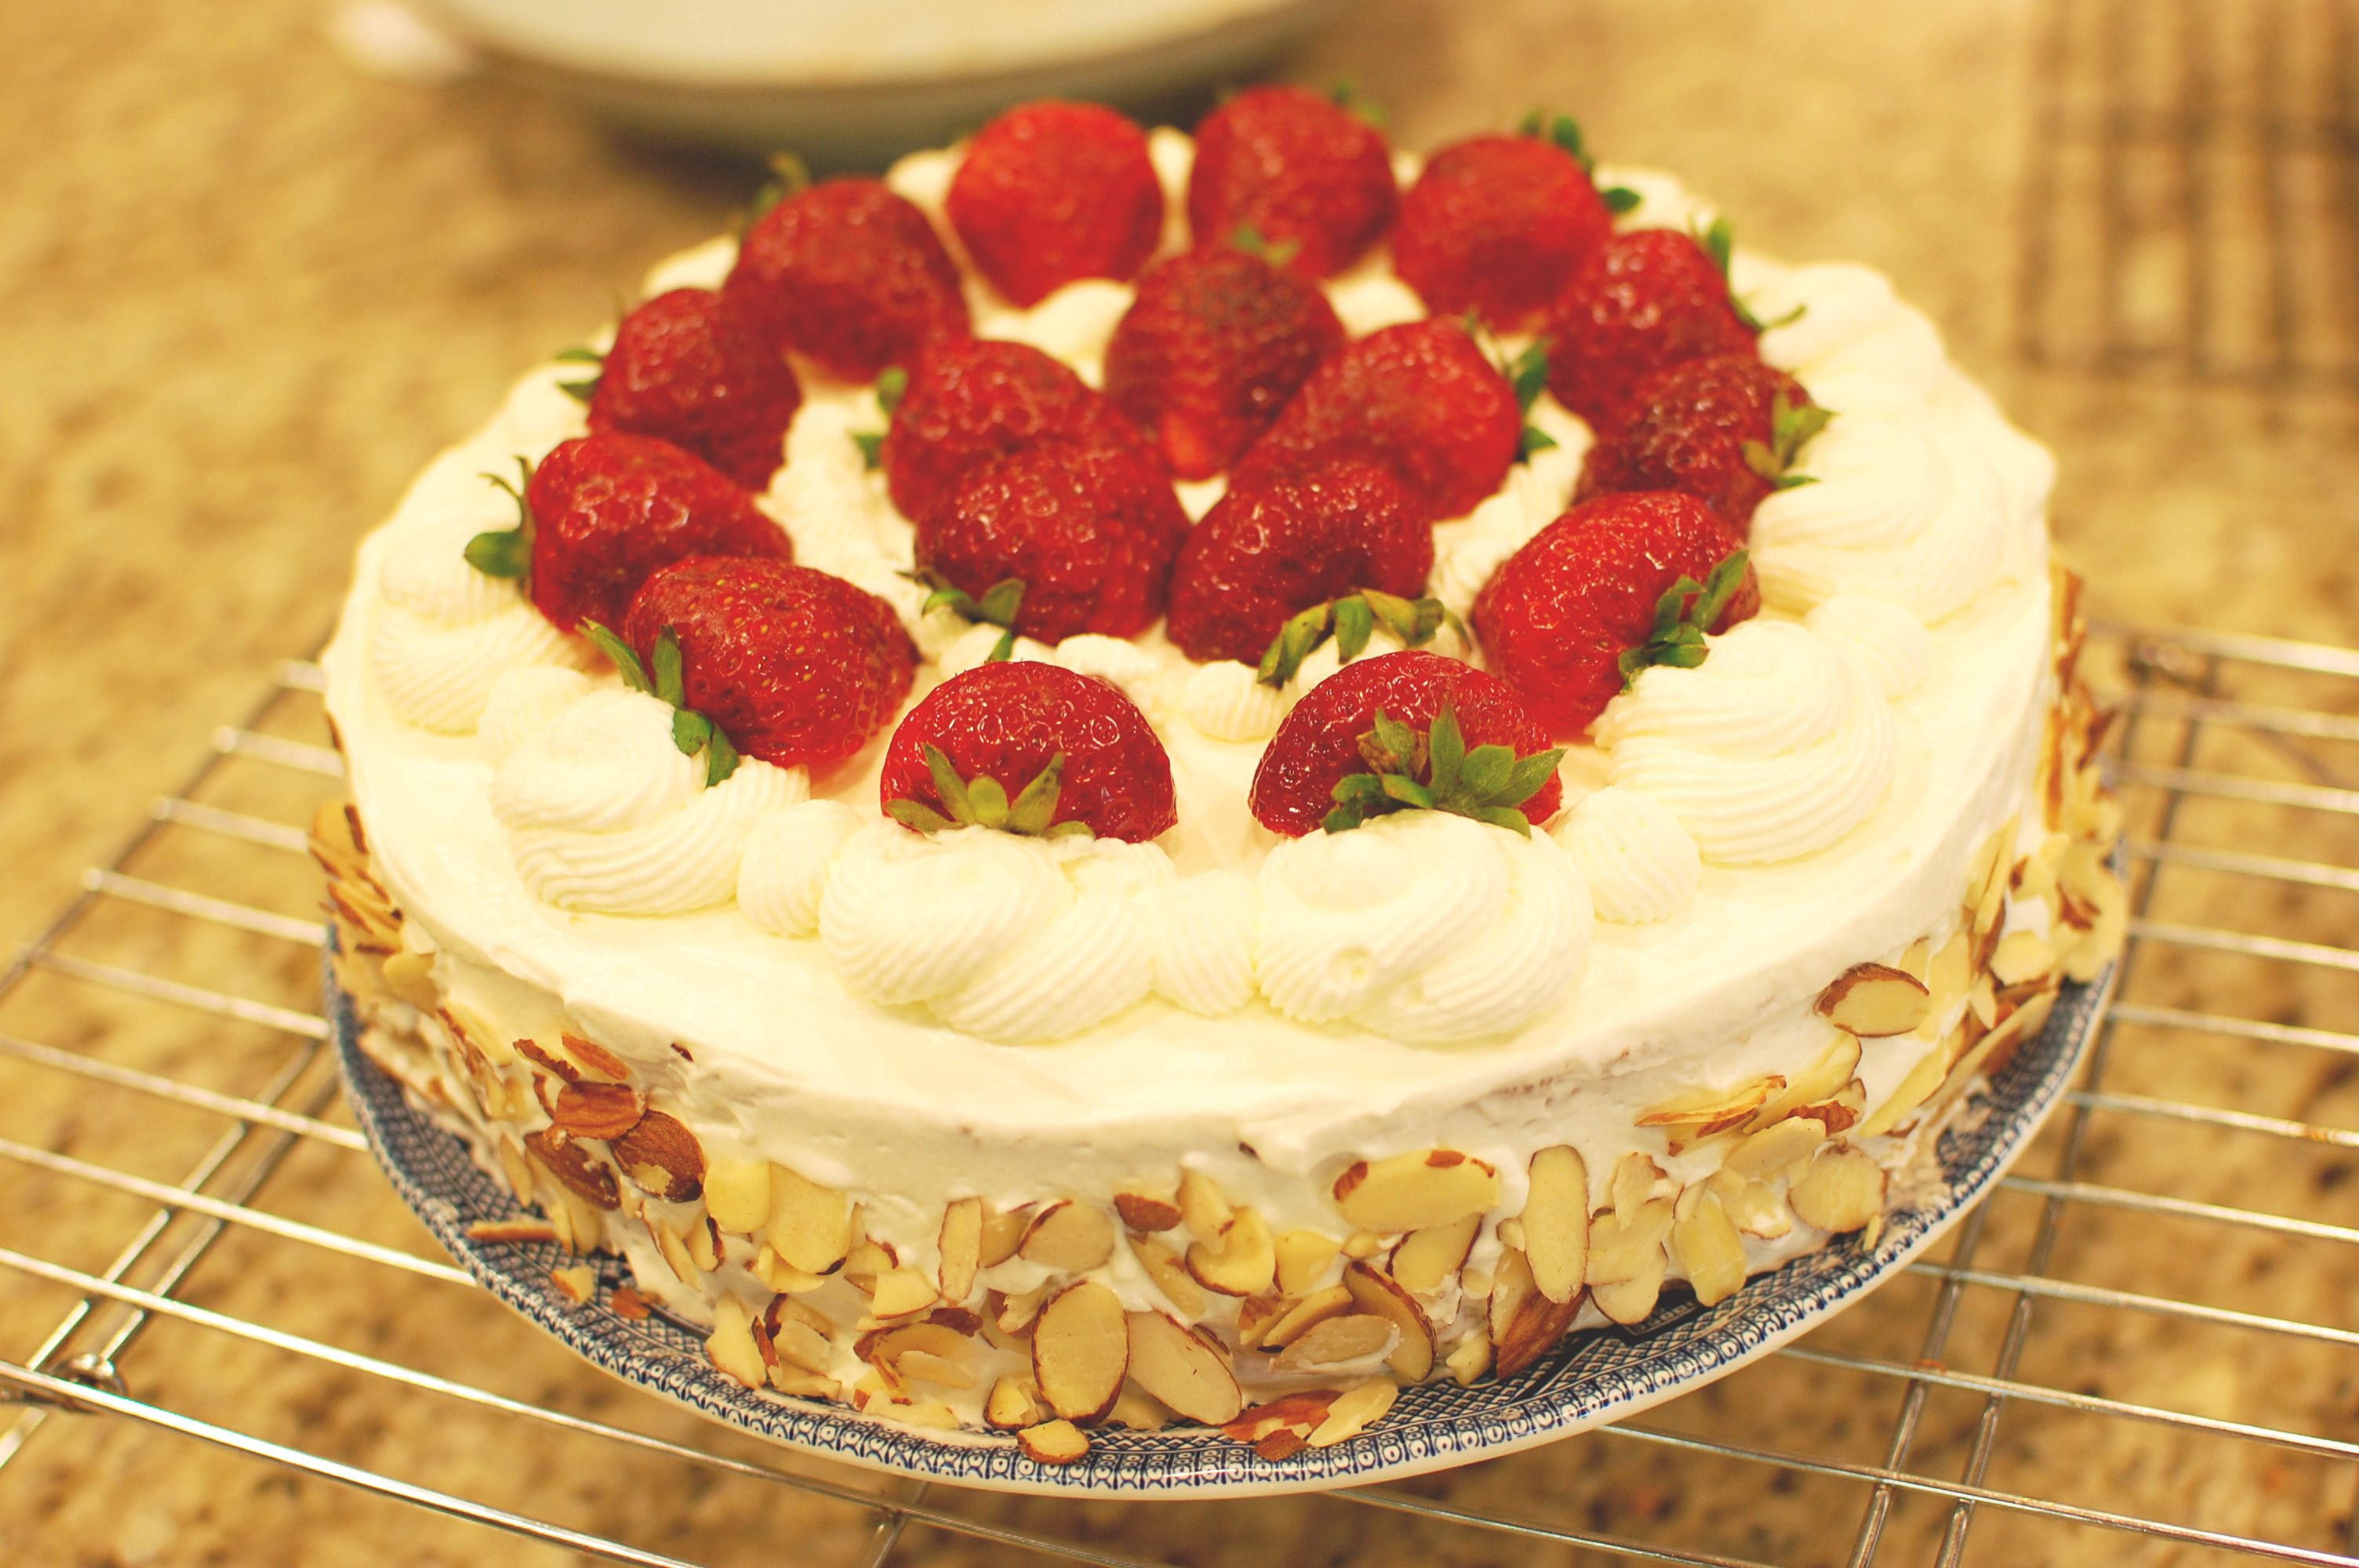 Best ideas about Japanese Birthday Cake . Save or Pin Japanese Strawberry Cake a k a Chinese Birthday Cake Now.